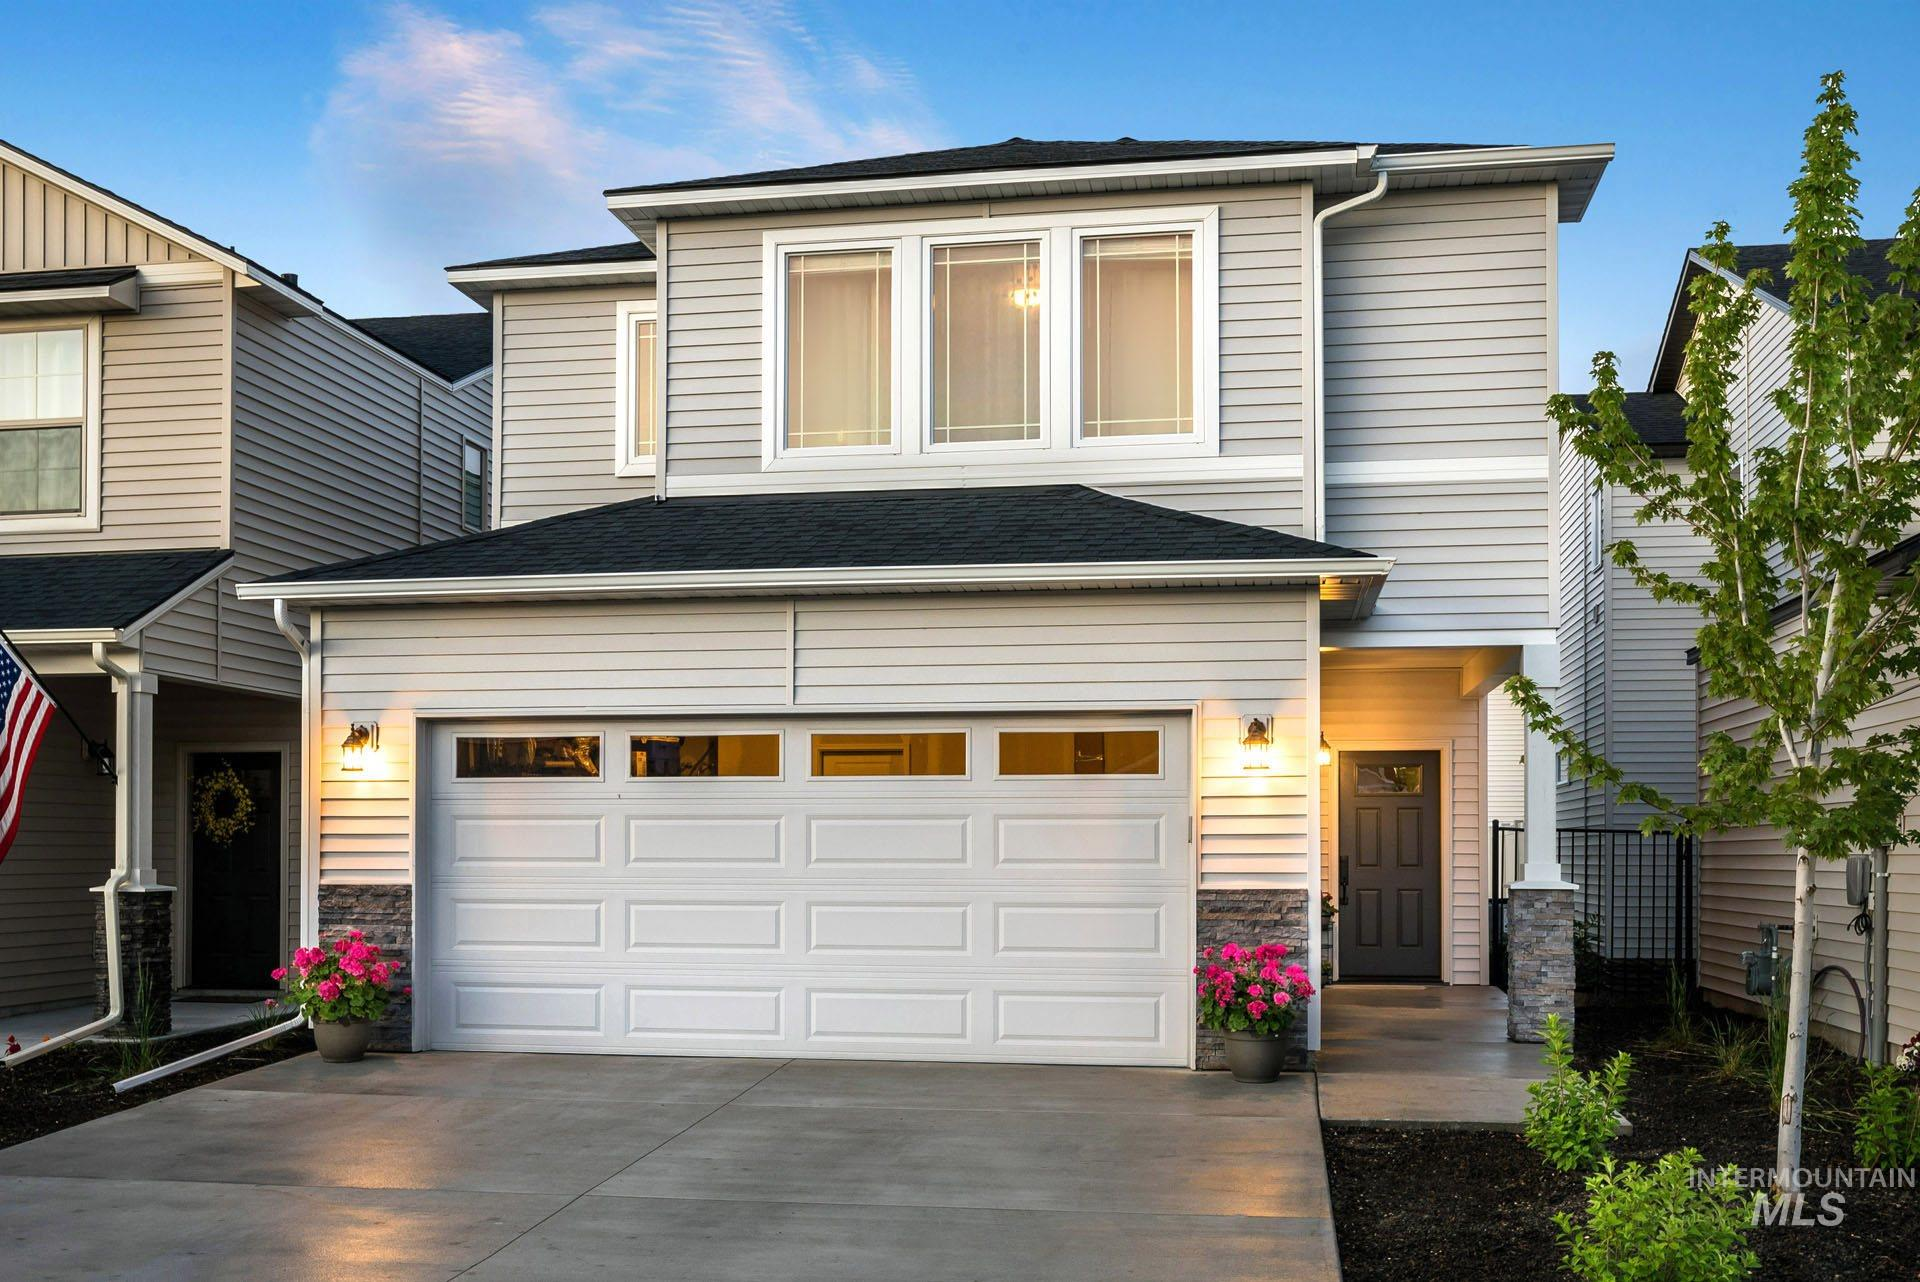 Biltmore | Blackrock Homes. Brand new completed model, just released by the Builder! Fantastic location. The entry opens to a large Great Room with a main level Tech Center w/ built-in desk & cabinets that is super functional. Master upstairs w/ large dual vanity + 2 more bdrms & a large loft that flexes as 2nd TV area. Lots of storage! Photos and Tours are similar; HOA takes care on landscape maintenance, front yard and rear yard, NO MOWING!